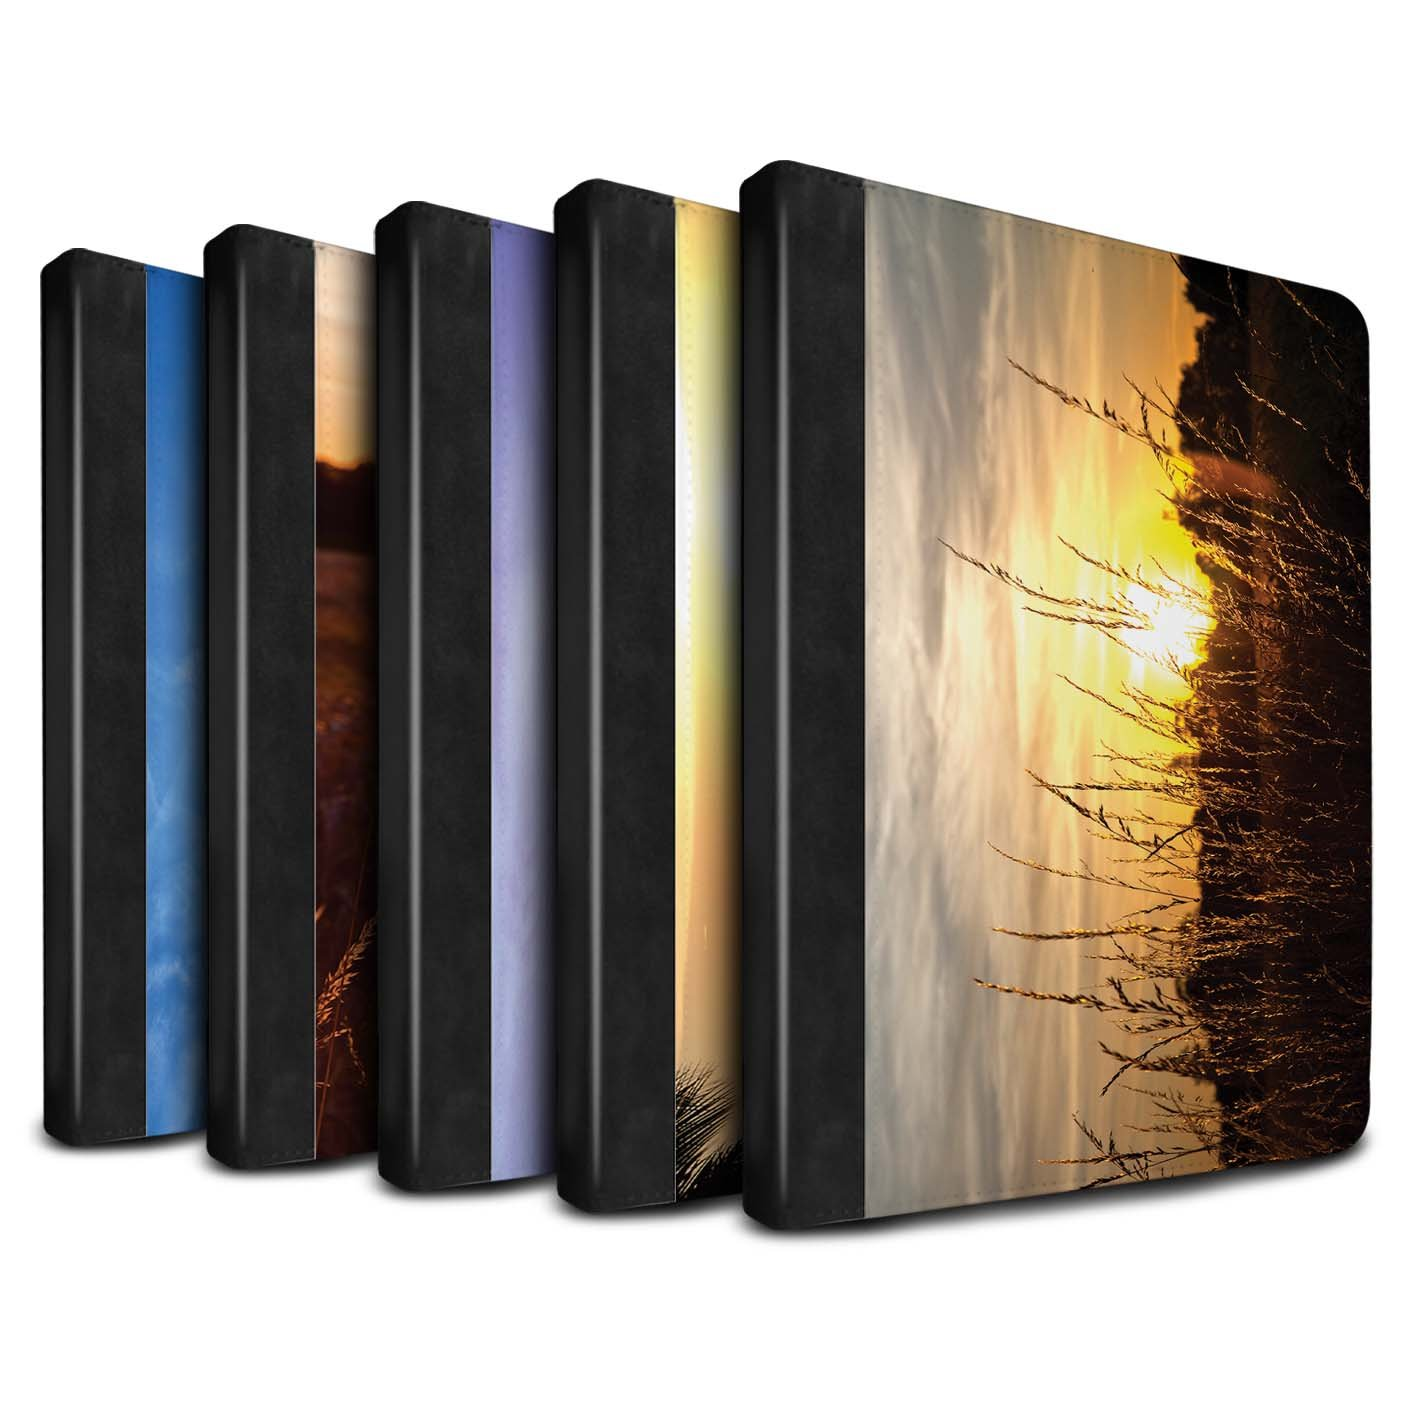 STUFF4 PU Leather Book/Cover Case for Apple iPad Pro 9.7 tablets / Multipack (20 Pack) Design / Sunset Scenery Collection